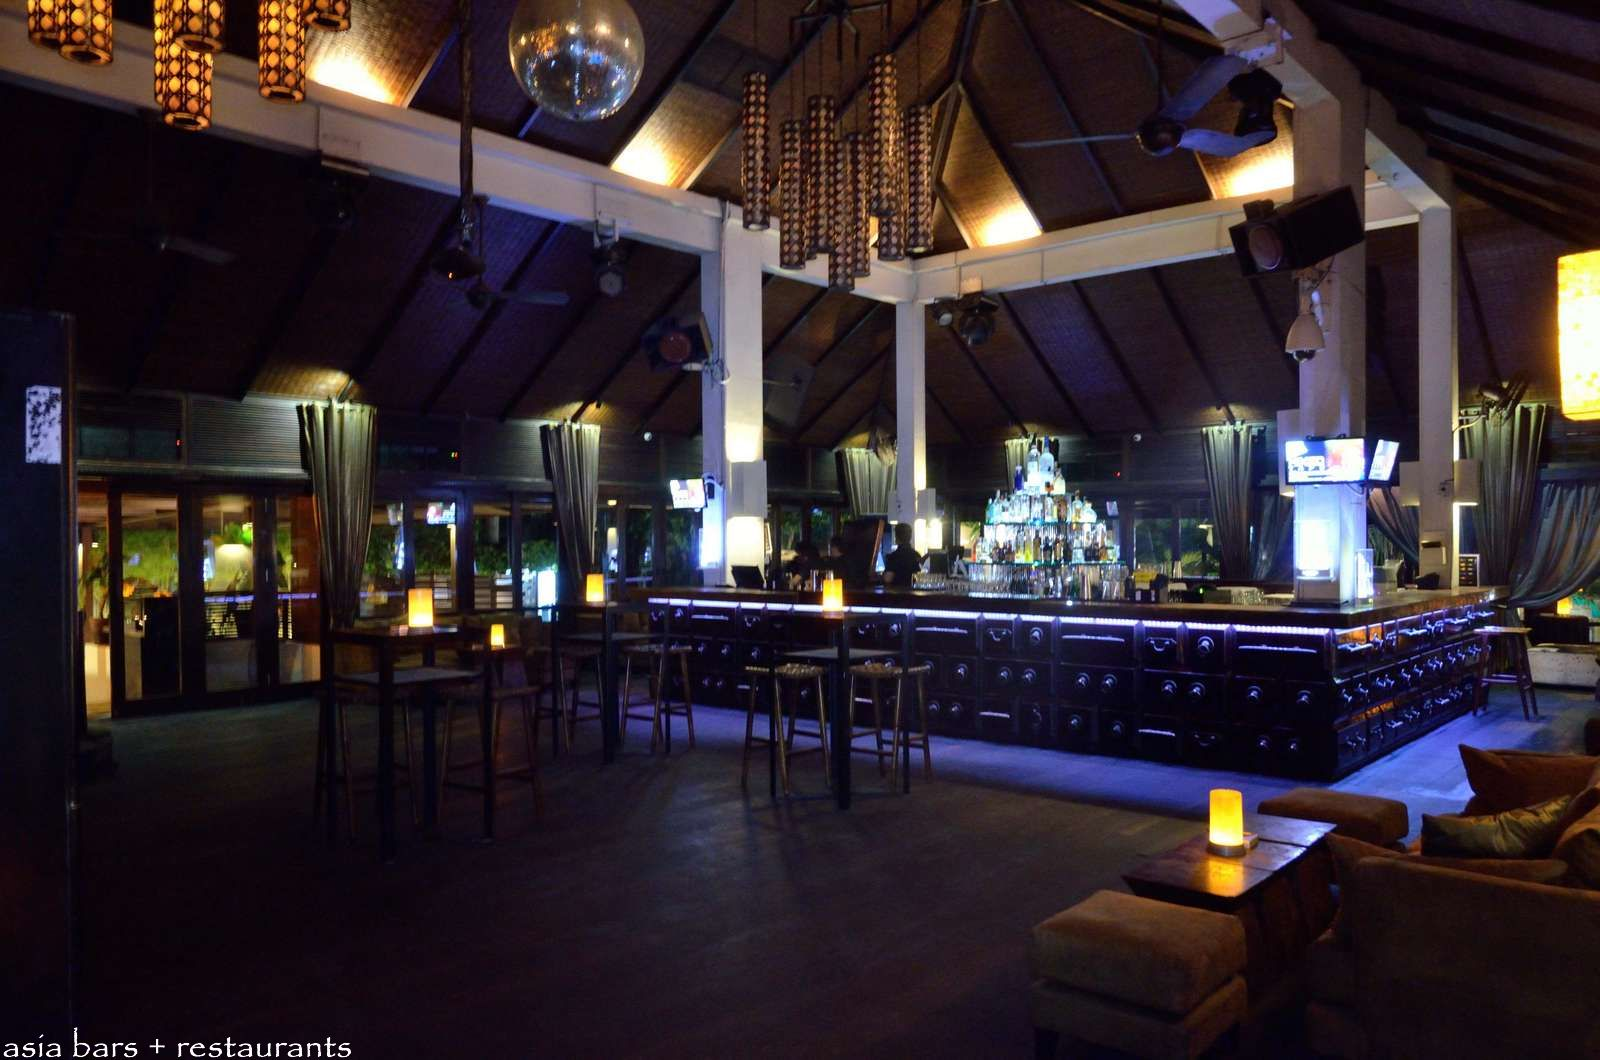 Hu U Bar Stellar Nightclub In Bali Indonesia Asia Bars